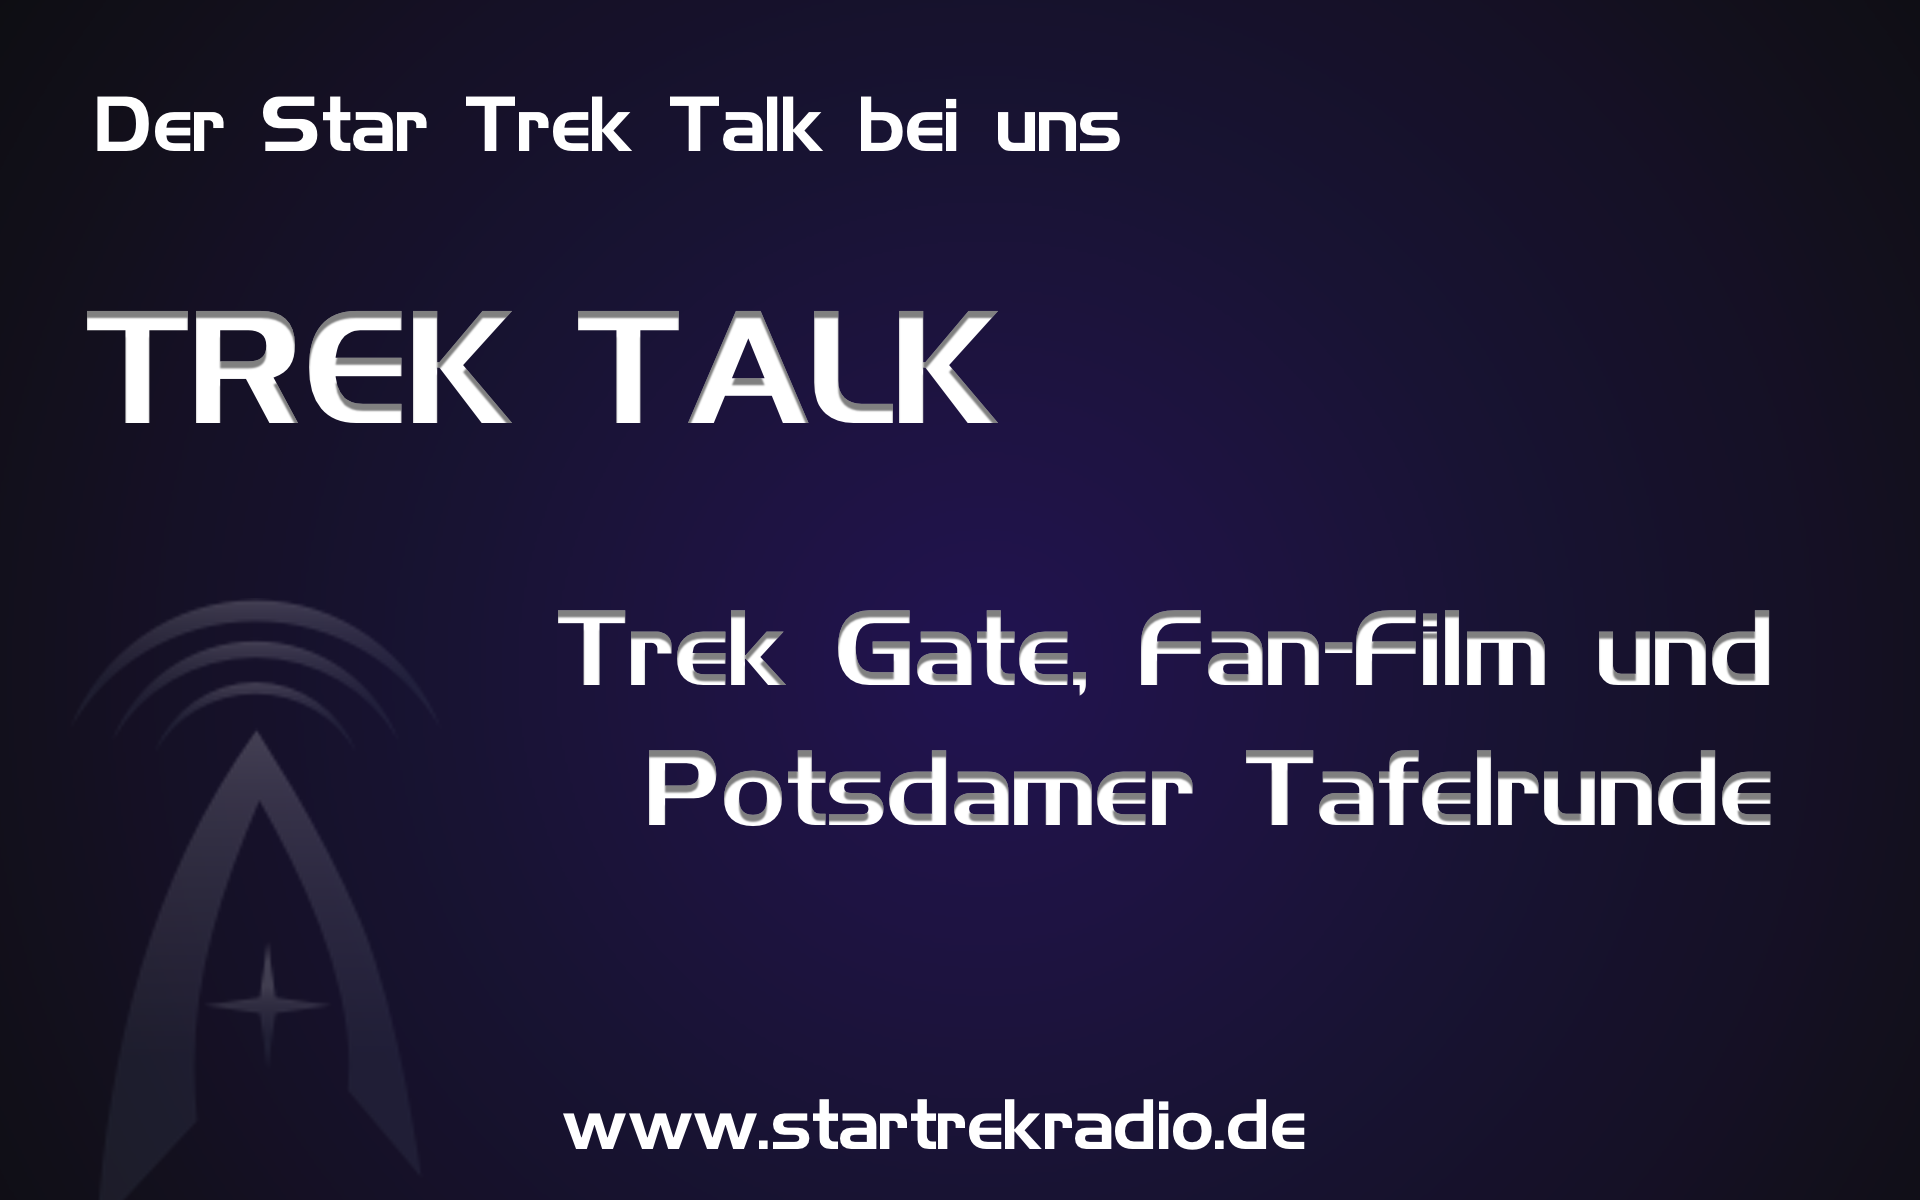 Trek Talk 1 – Trek Gate, Fan-Film und Potsdamer Tafelrunde